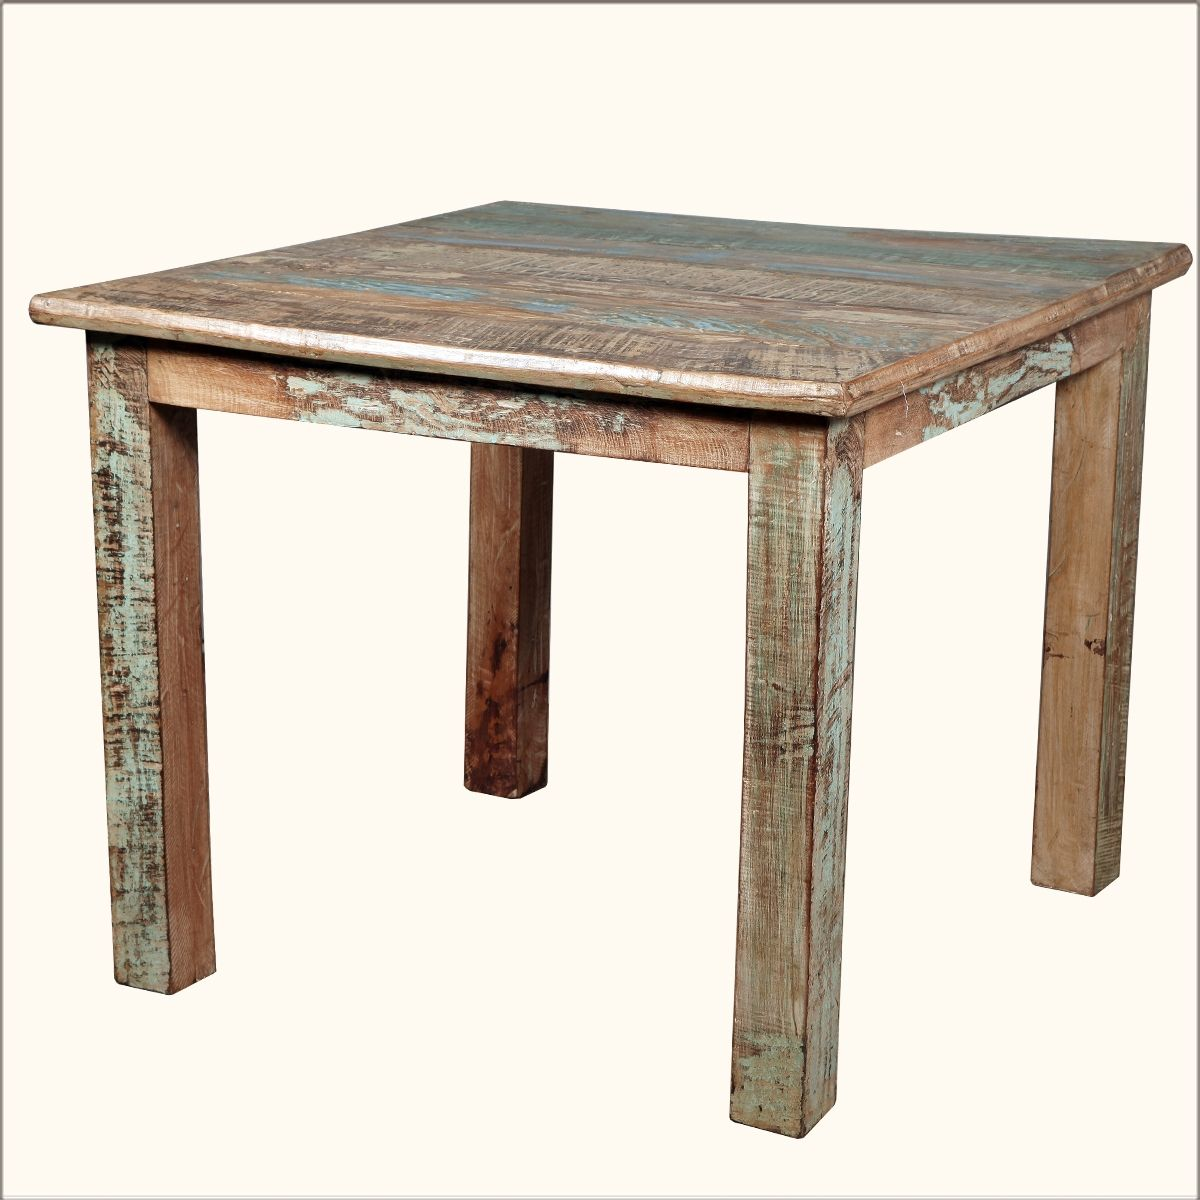 Small Rustic Kitchen Table Set Rustic Kitchen Tables Small Rustic Kitchens Rustic Wood Kitchen Tables